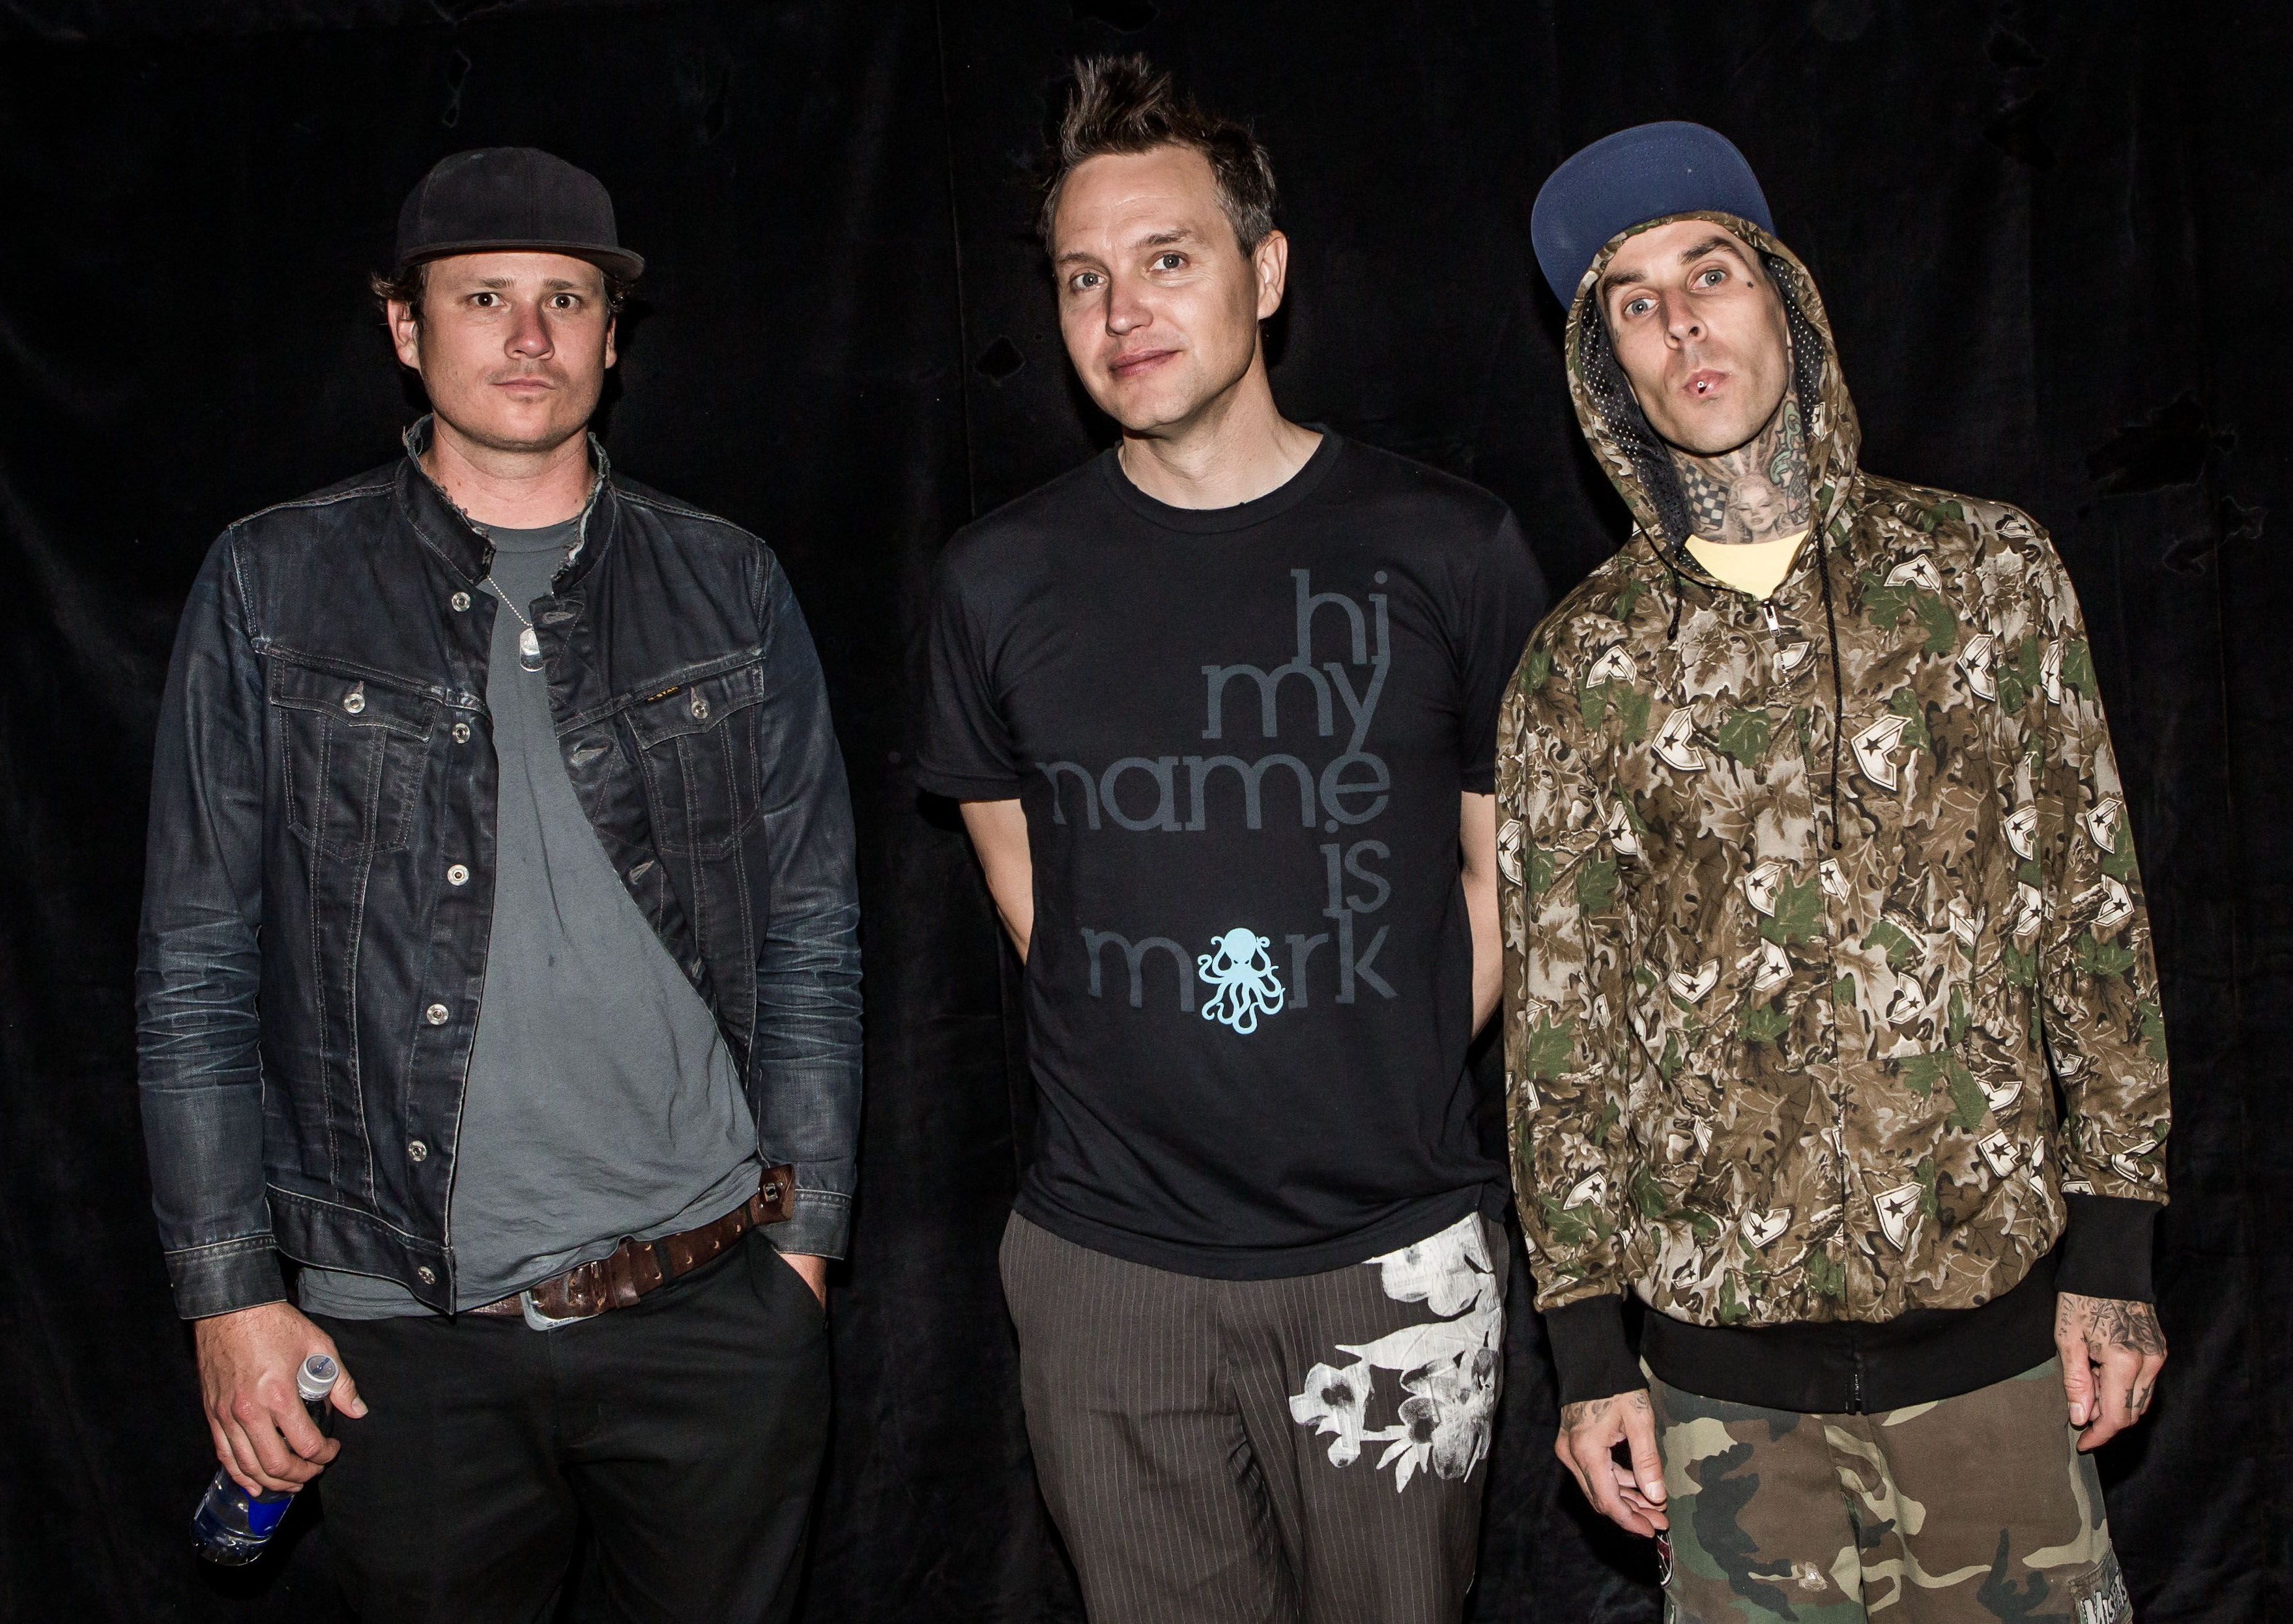 Are pop punk band Blink-182 back together and recording new music?